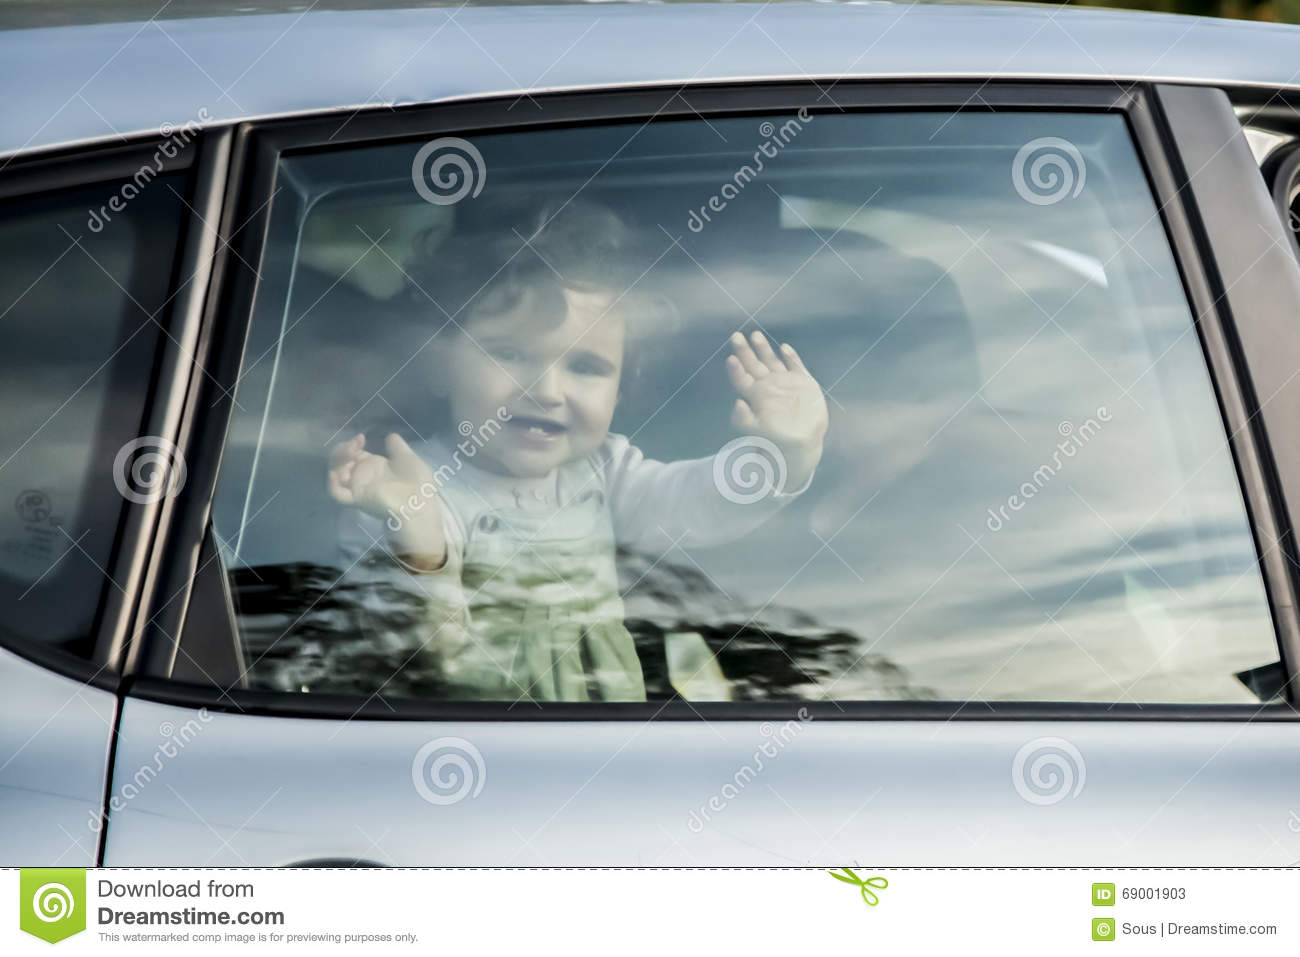 B b souriant regardant une fen tre de voiture photo stock Fenetre voiture